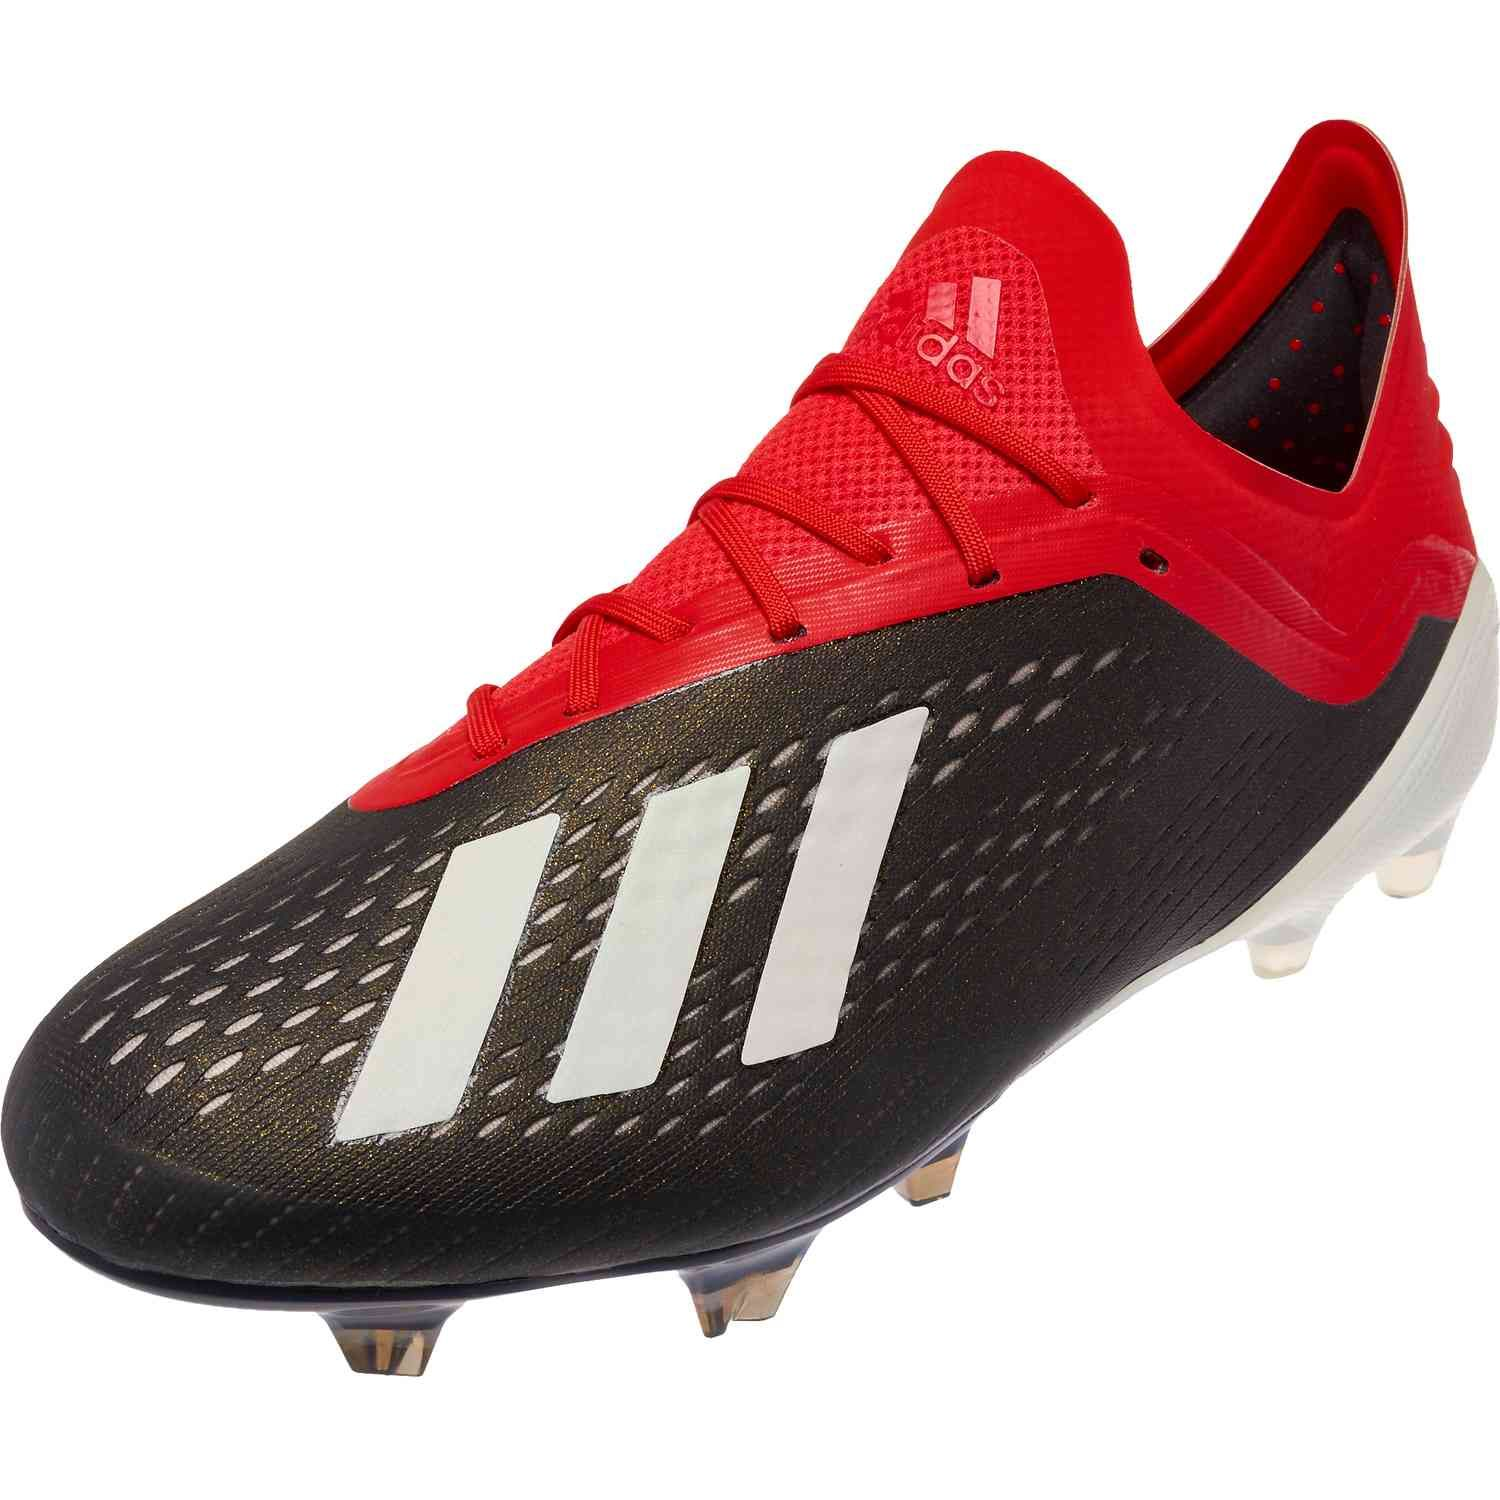 Buy the Always Forward adidas X 18.1 fg soccer cleats from SoccerPro ... f7ae4b69535